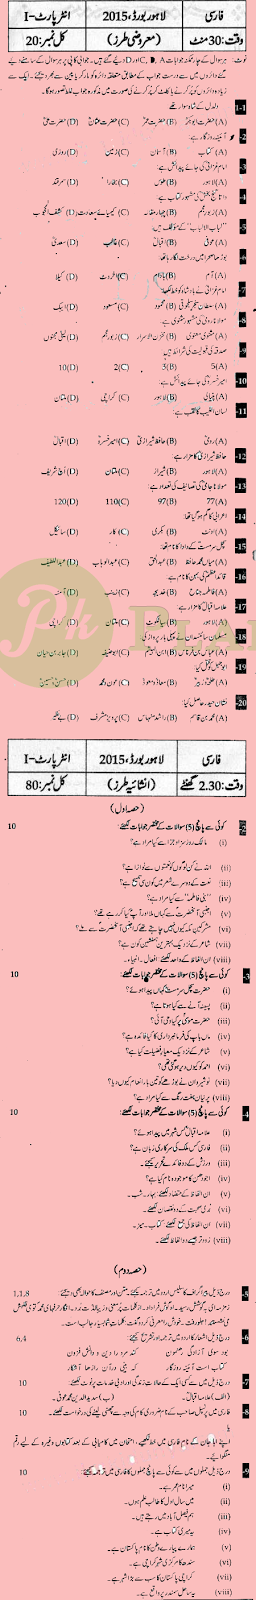 Past Papers of Persian Inter Part 1 Lahore Board 2015